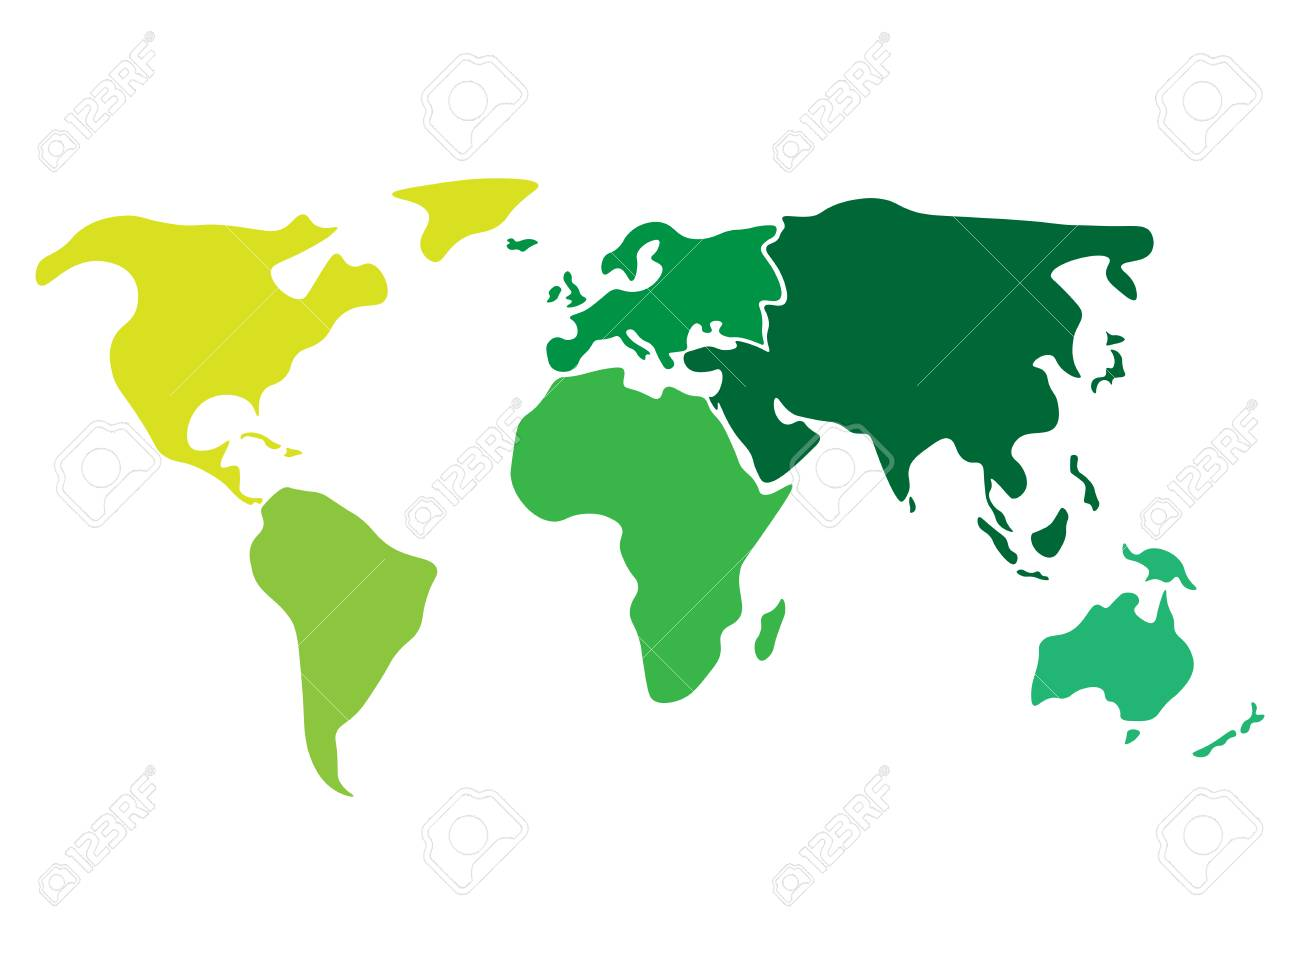 Multicolored World Map Divided To Six Continents In Different